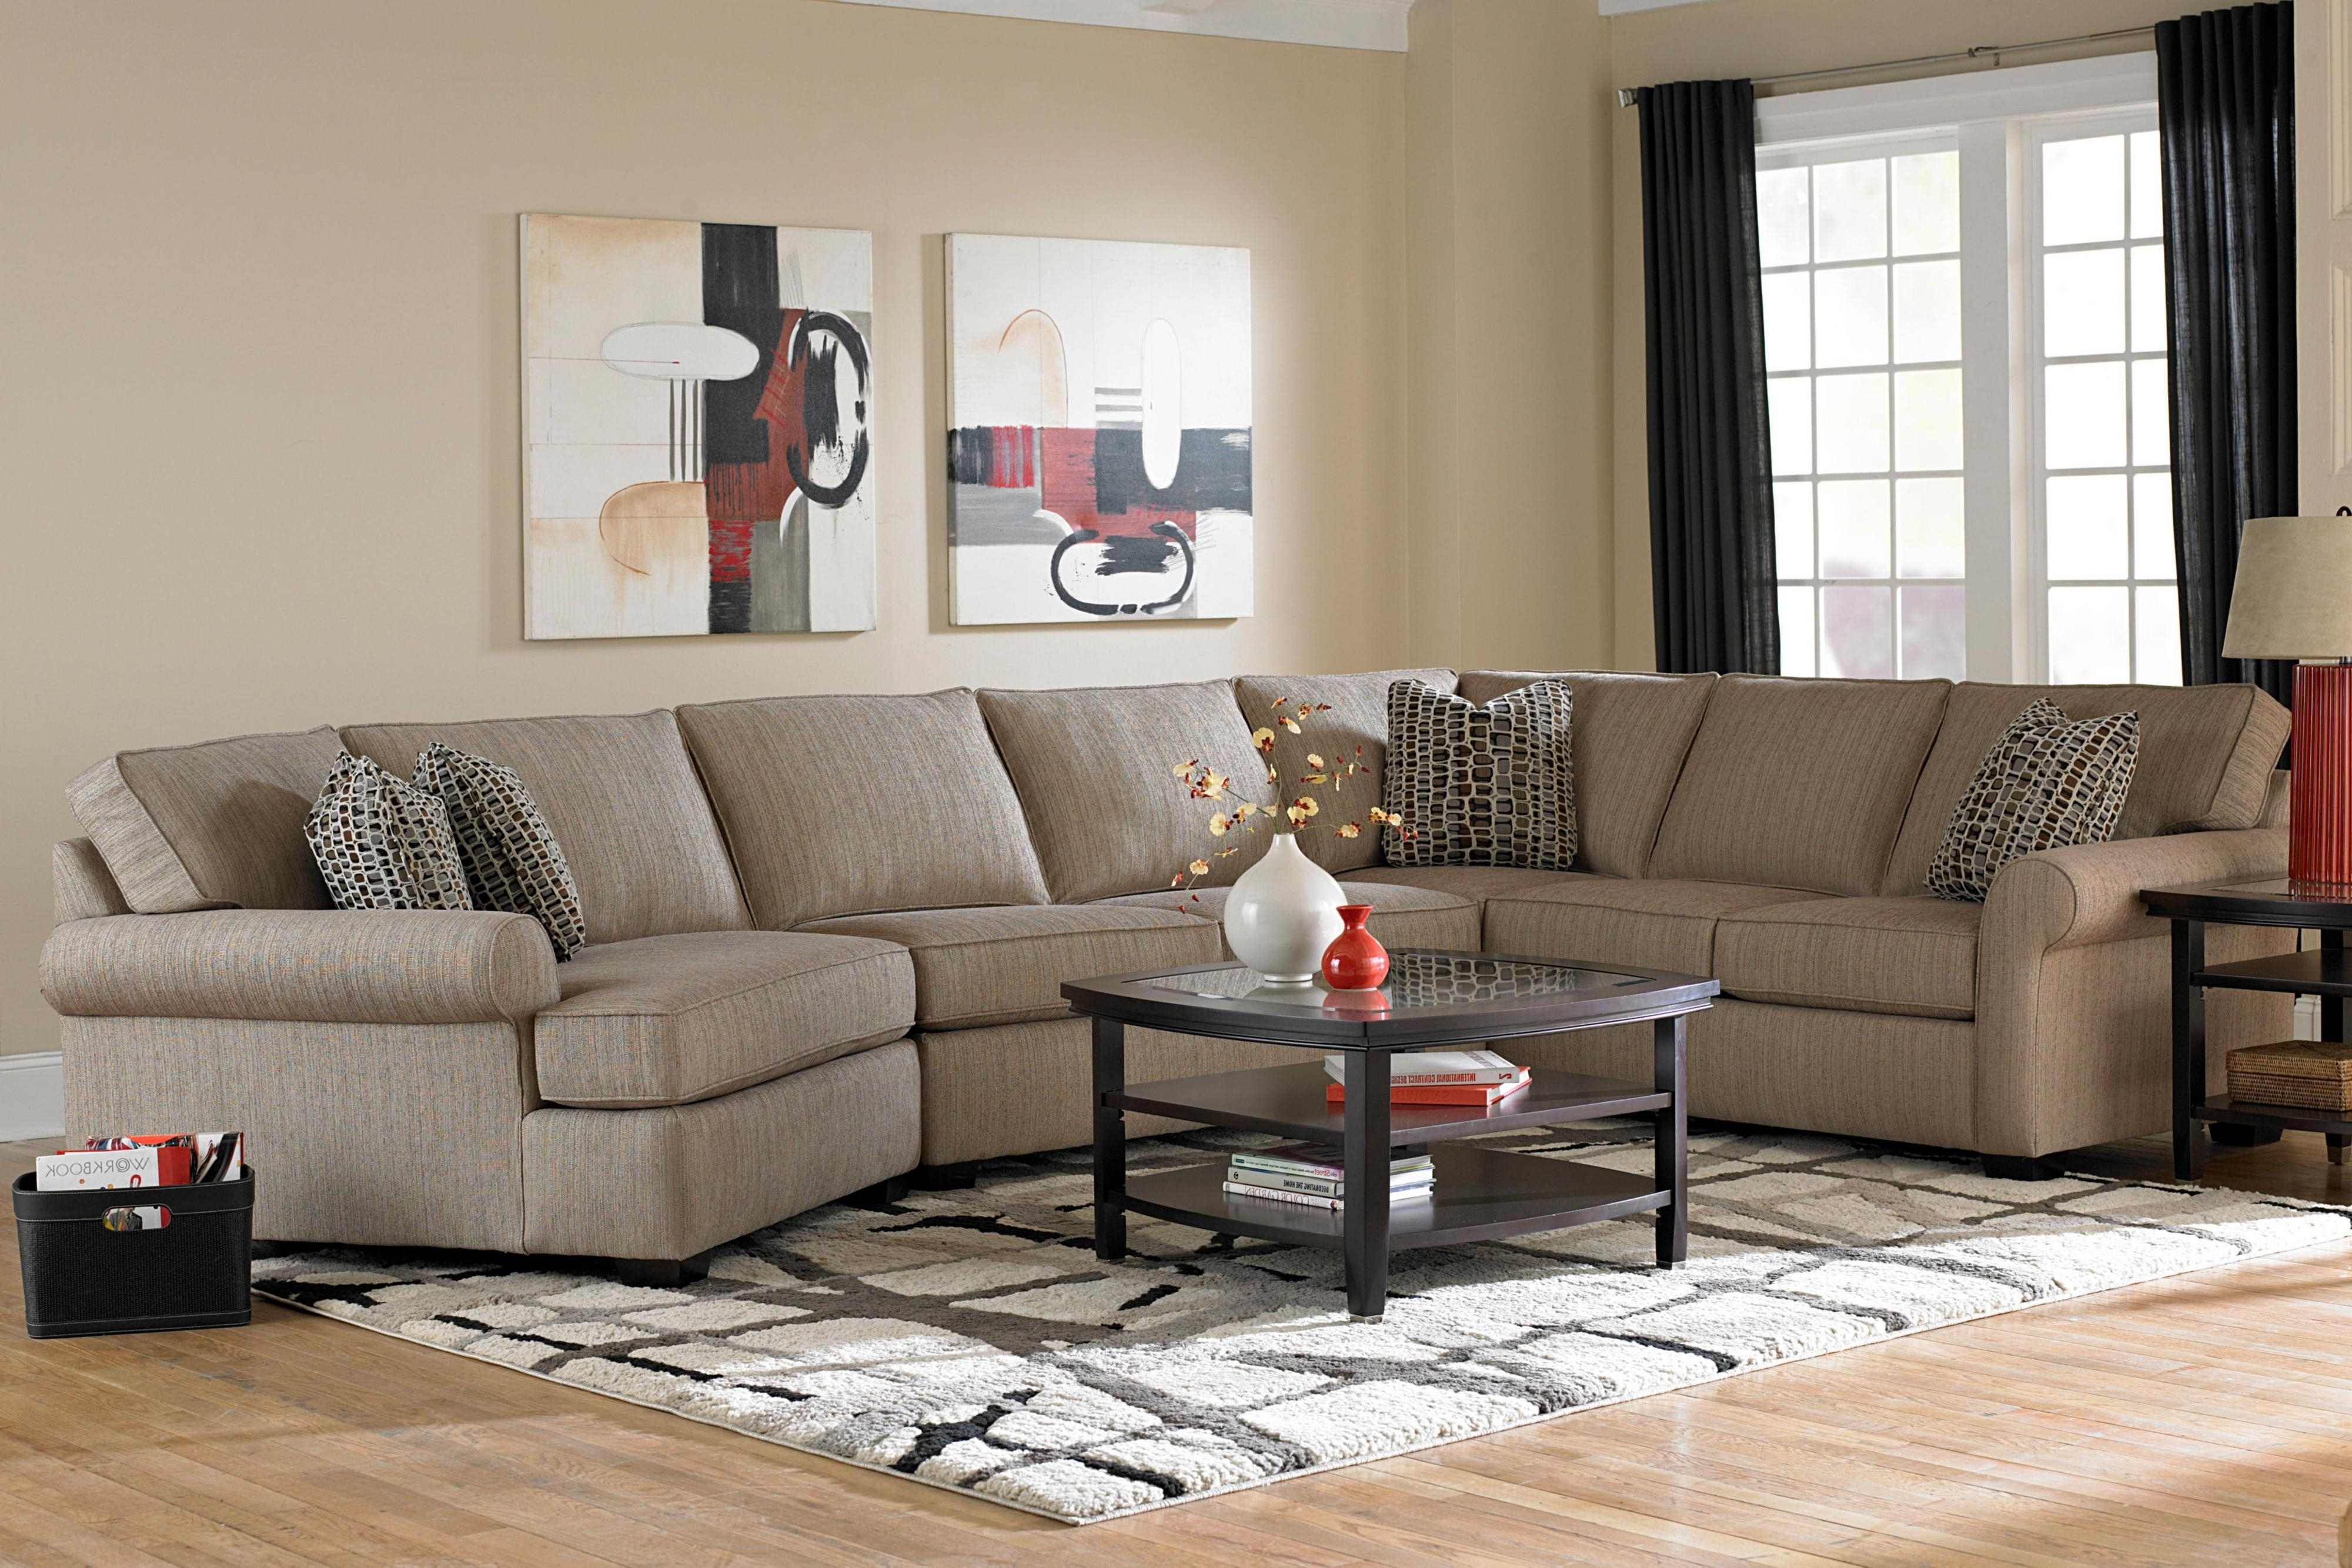 Trendy Broyhill Furniture Ethan Transitional Sectional Sofa With Right For Quincy Il Sectional Sofas (View 17 of 20)